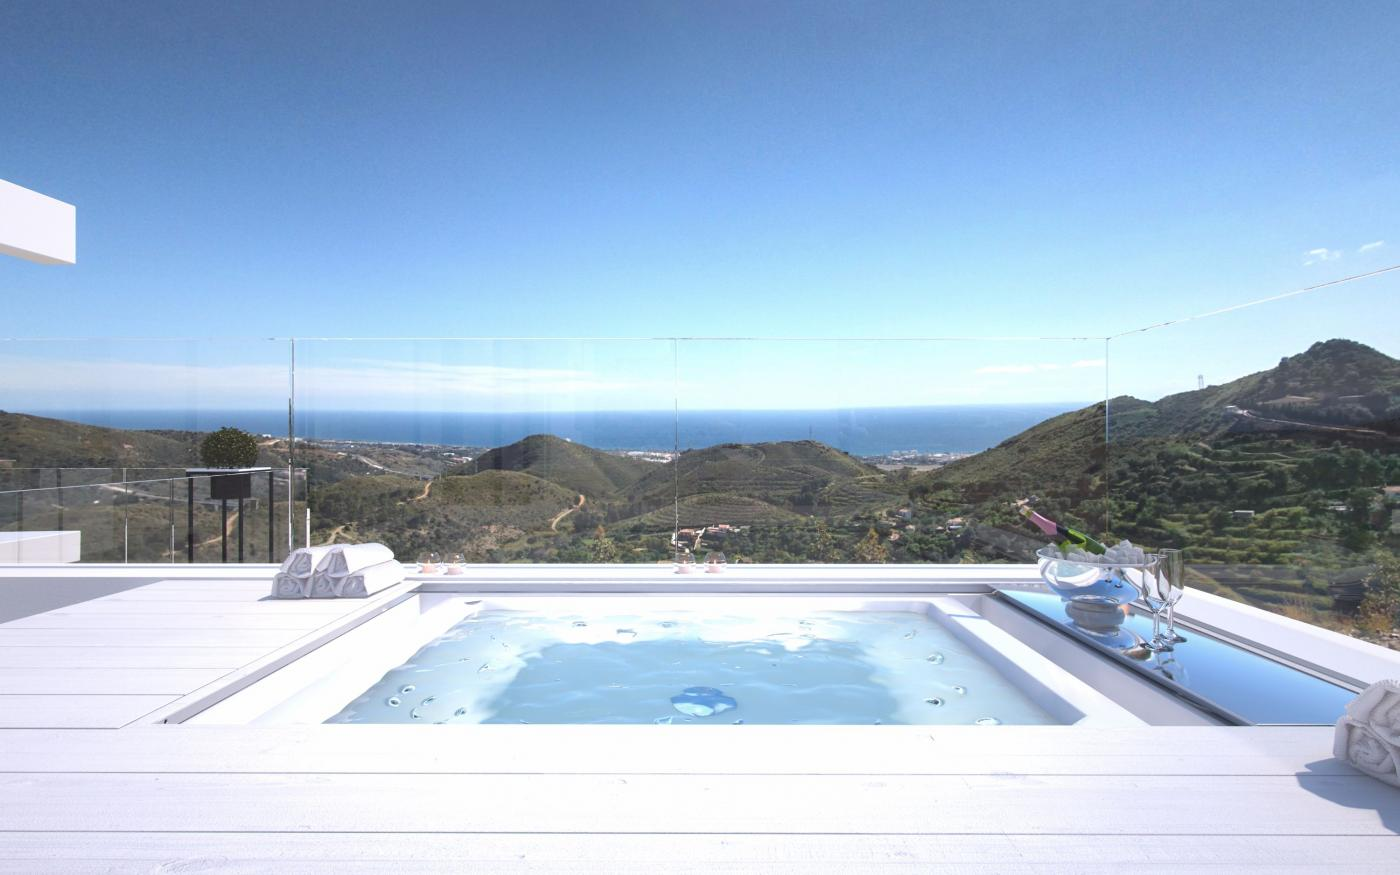 3 Bedroom Apartment for Sale in Marbella | View of Pool to Sea